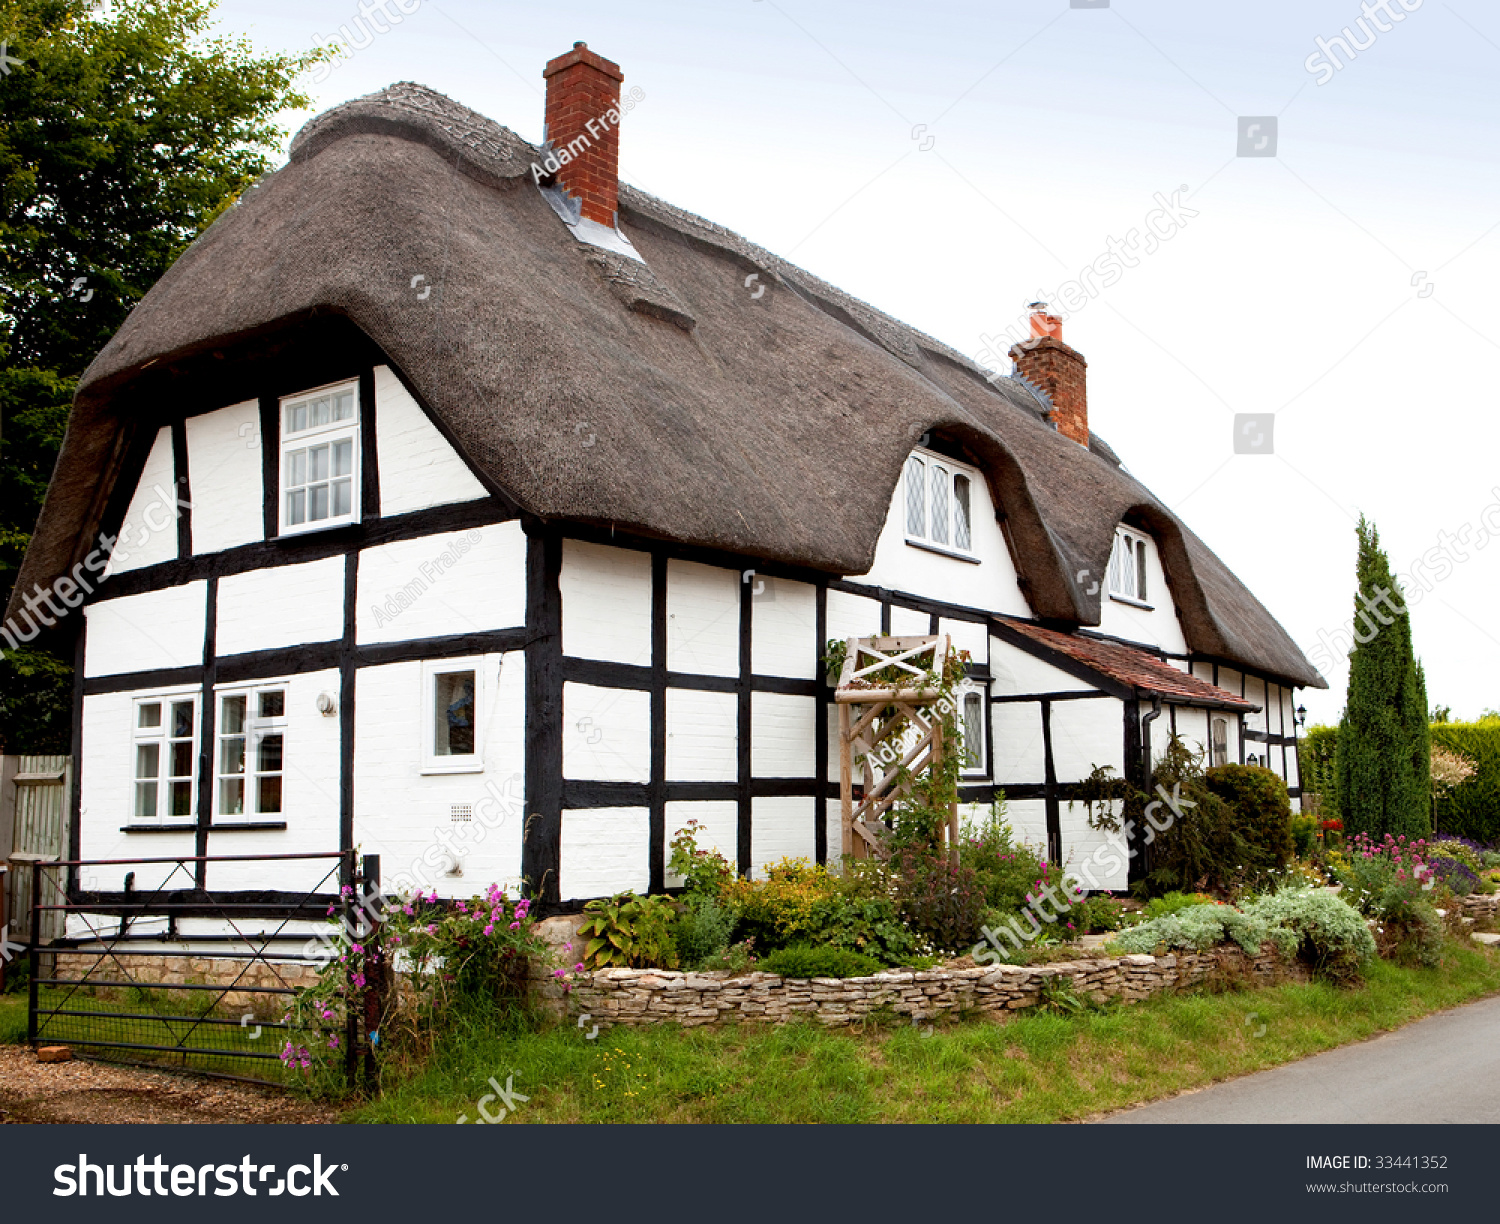 A traditional thatched cottage in rural England #33441352